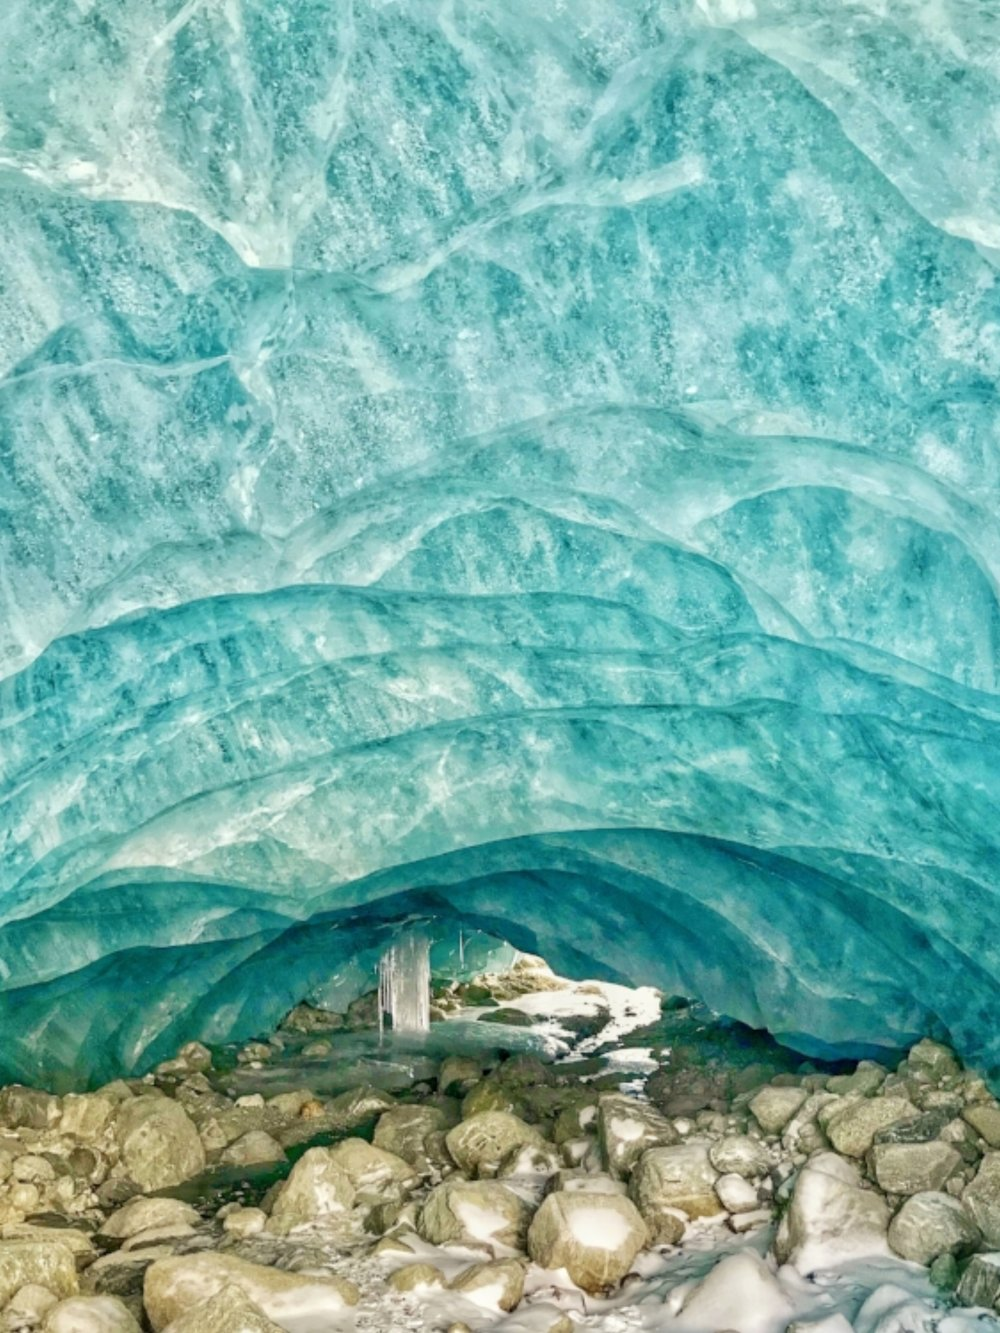 Helicopter ice cave interior